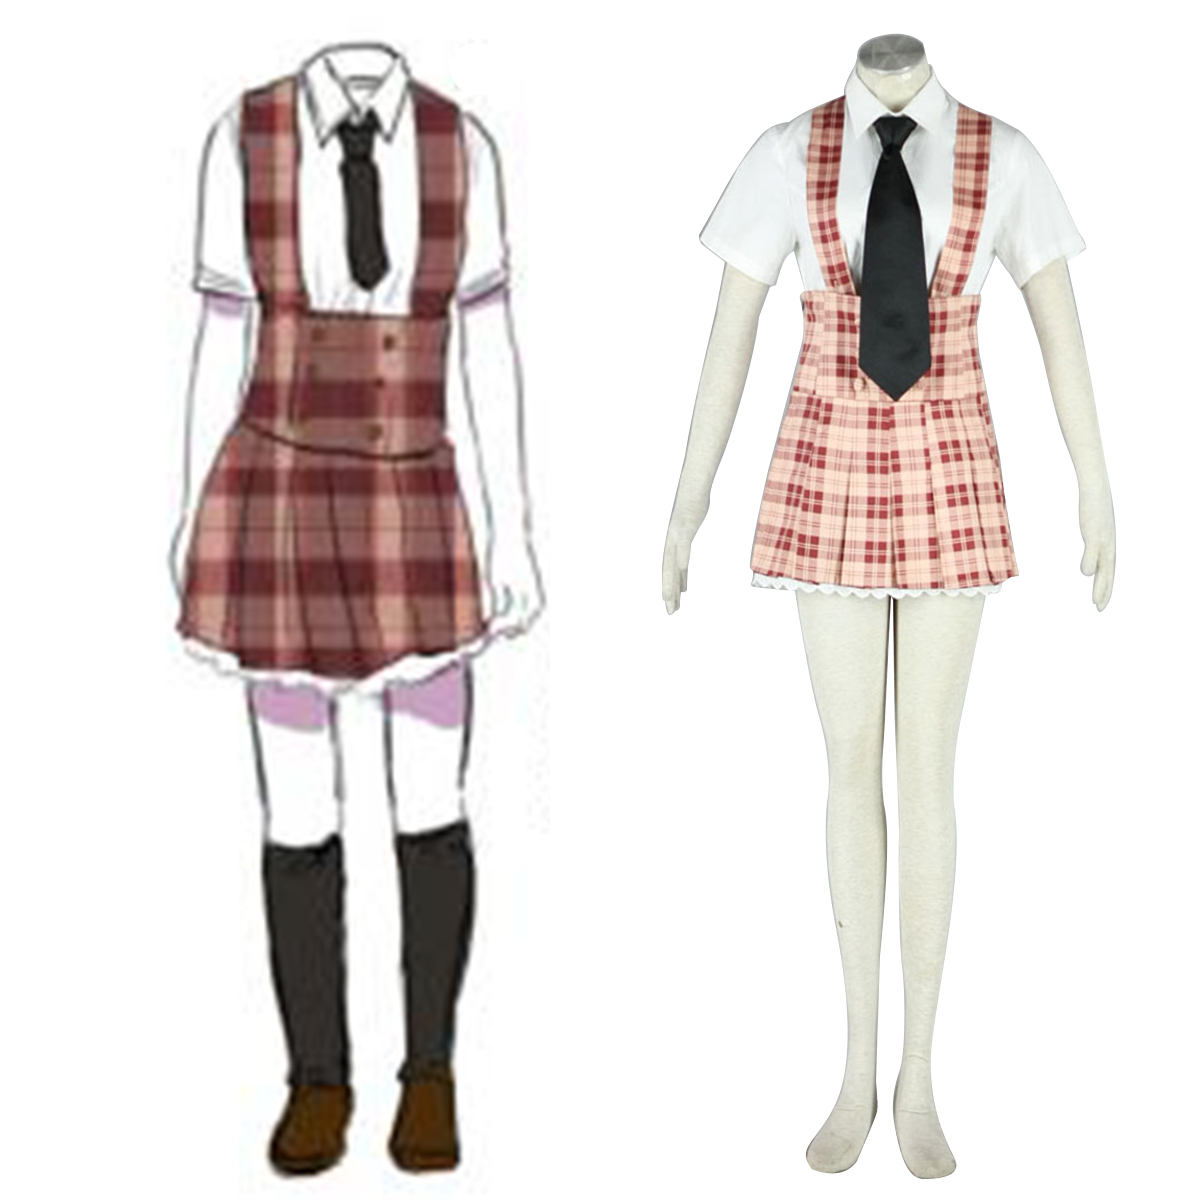 Axis Powers Hetalia Summer Female Uniform 2 Anime Cosplay Costumes Outfit